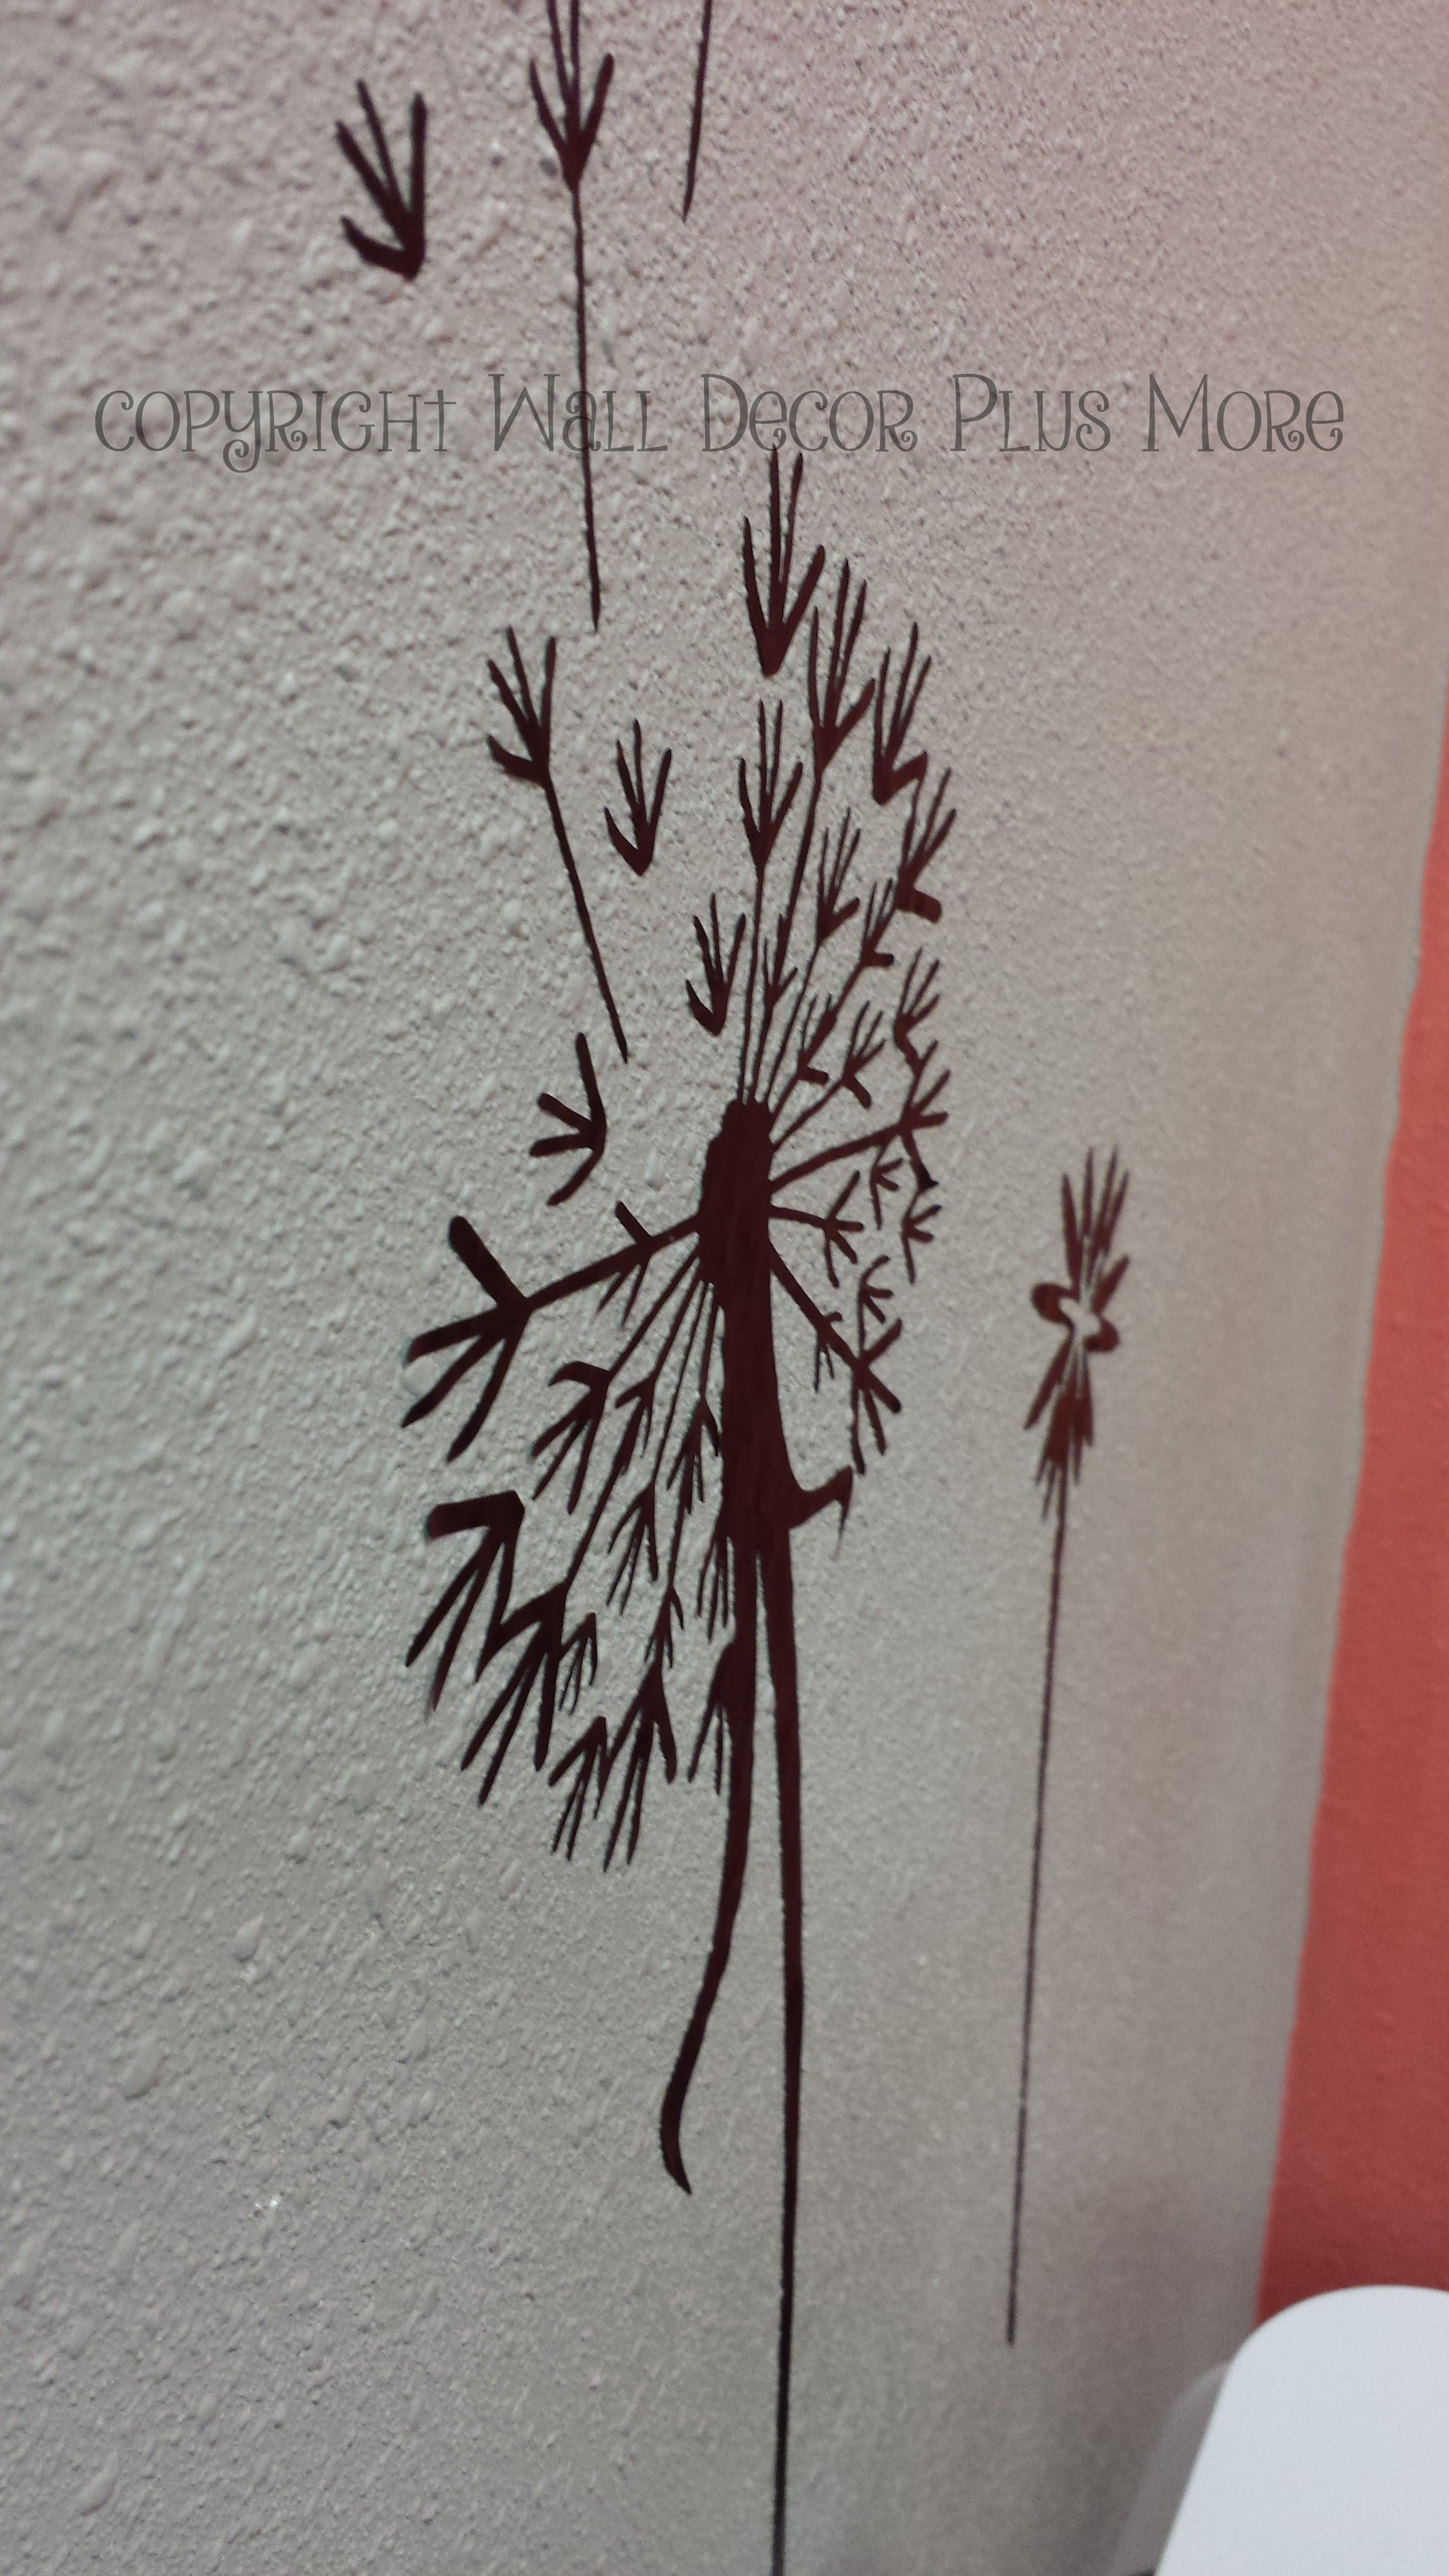 3 Reasons Why Our New Wall Decal Vinyl Material Is Better